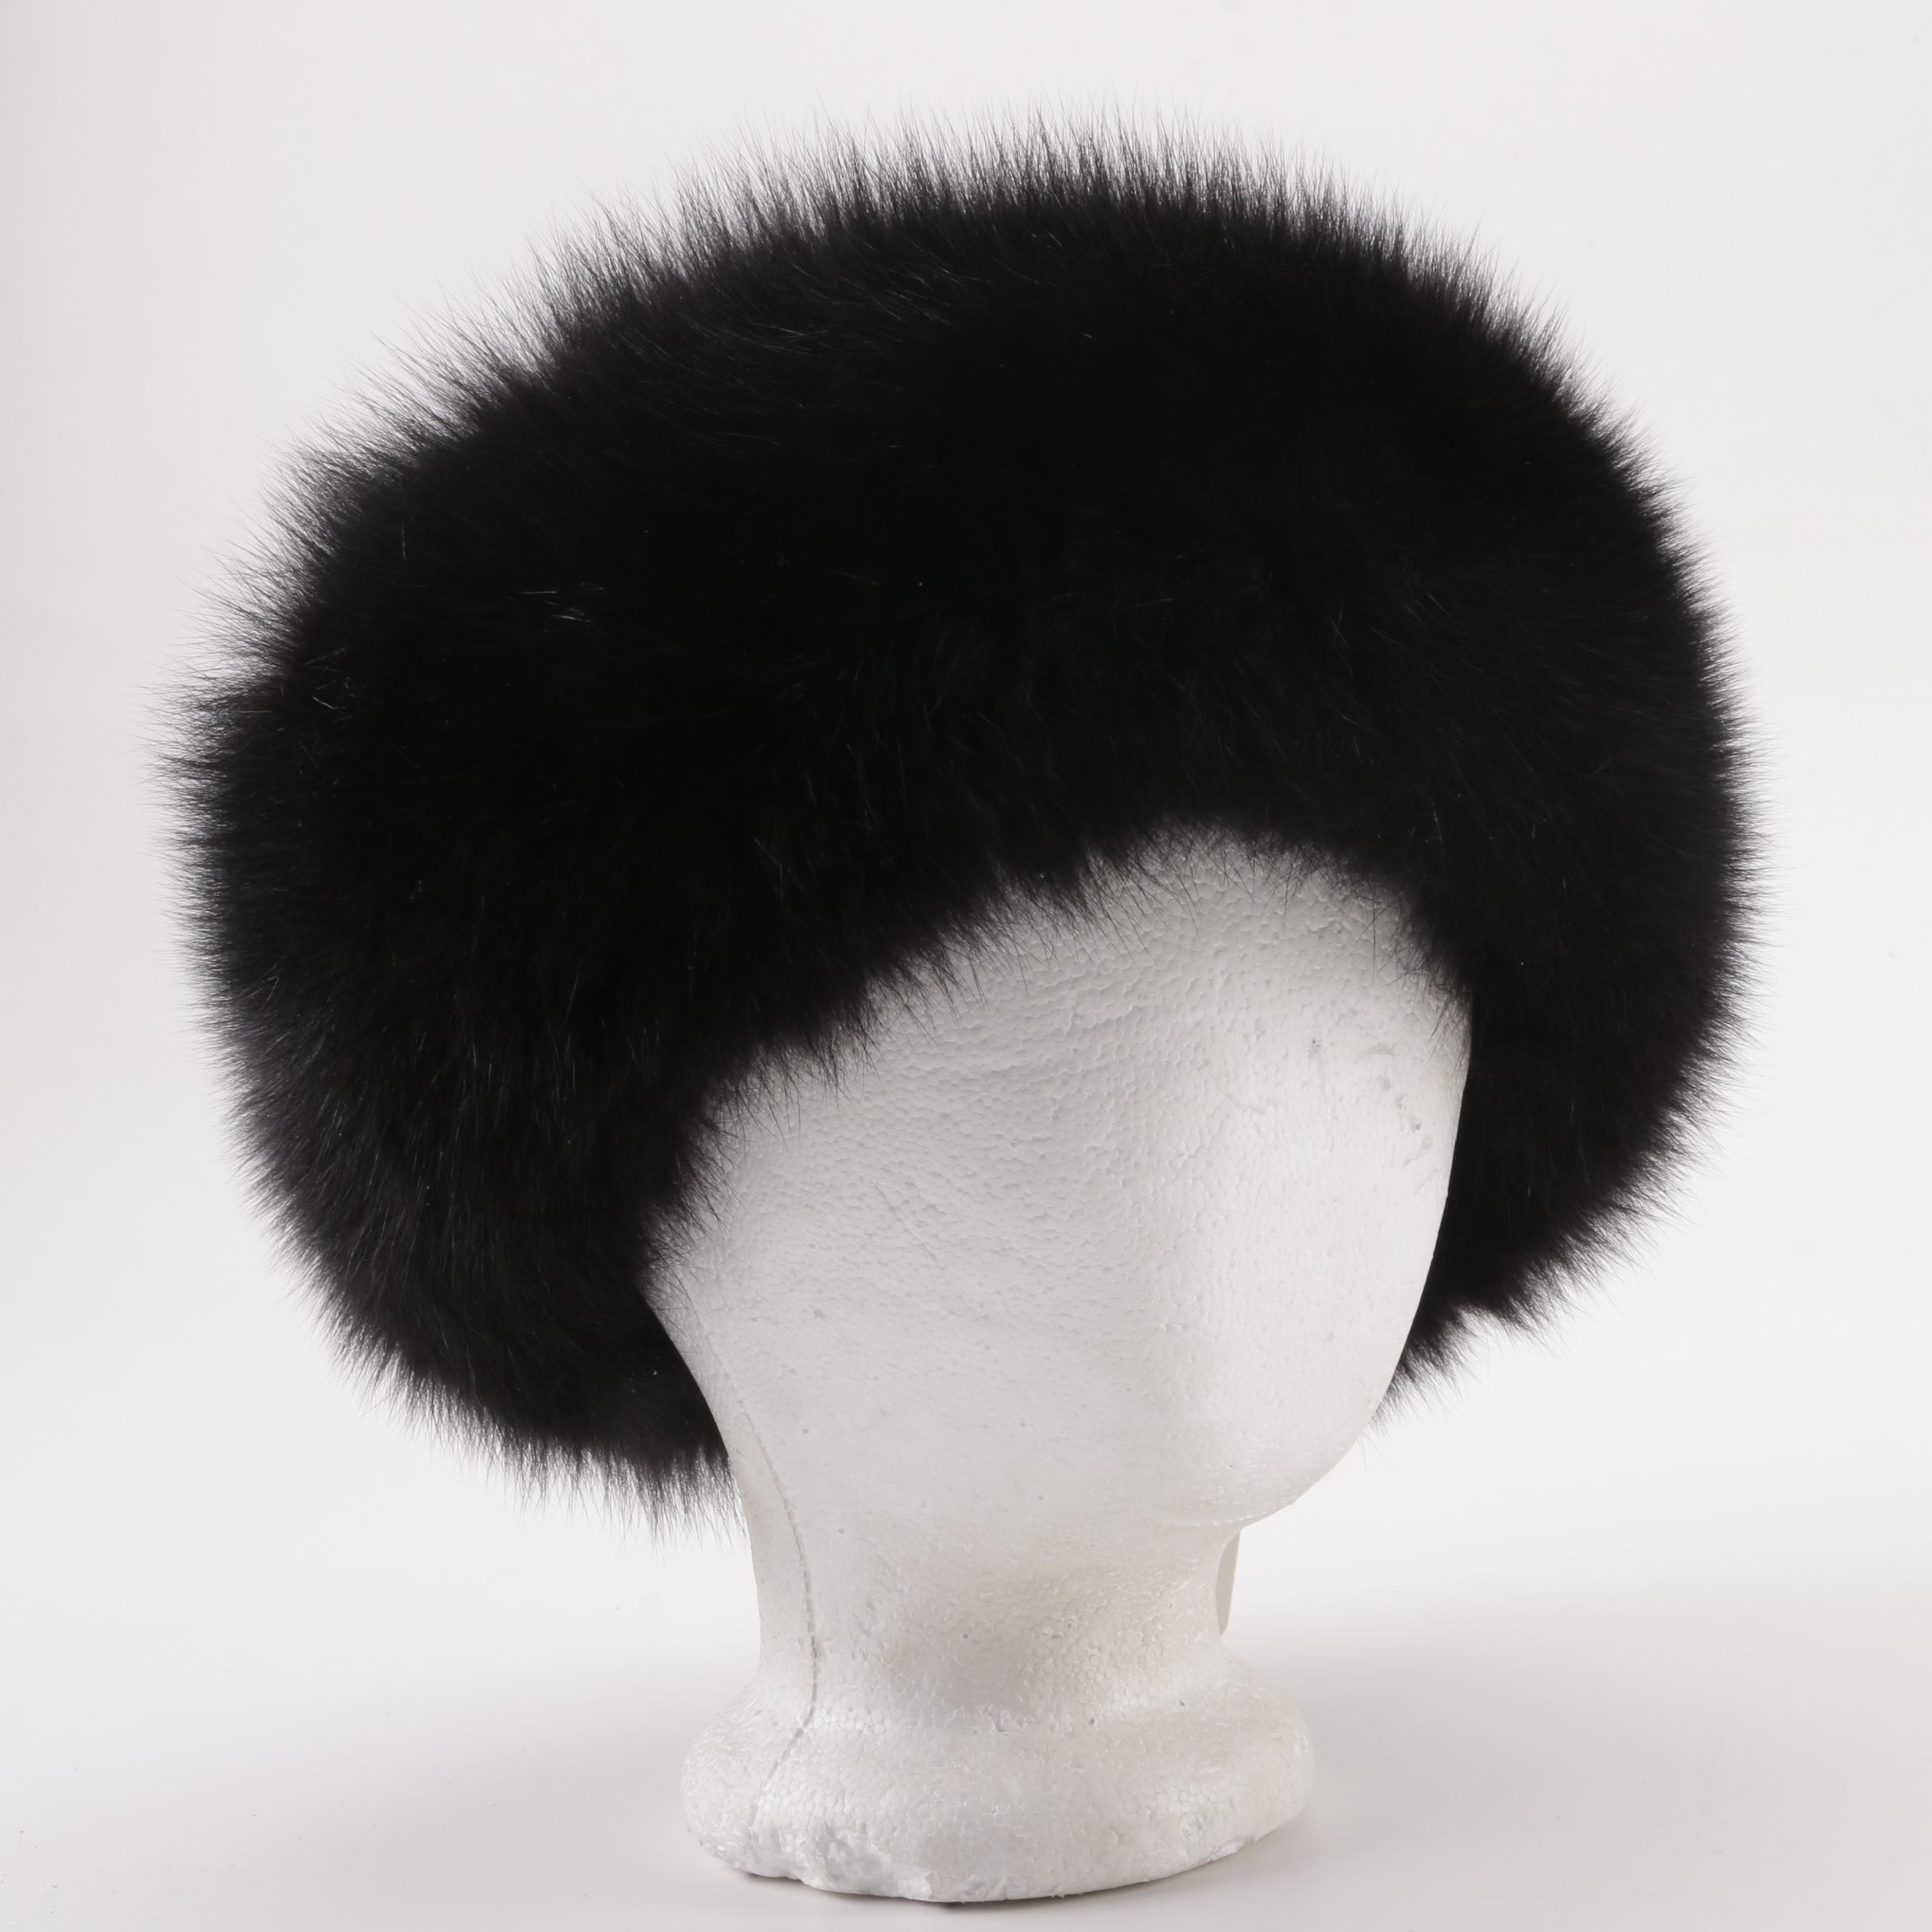 Neiman Marcus Dyed Black Fox Fur Headband